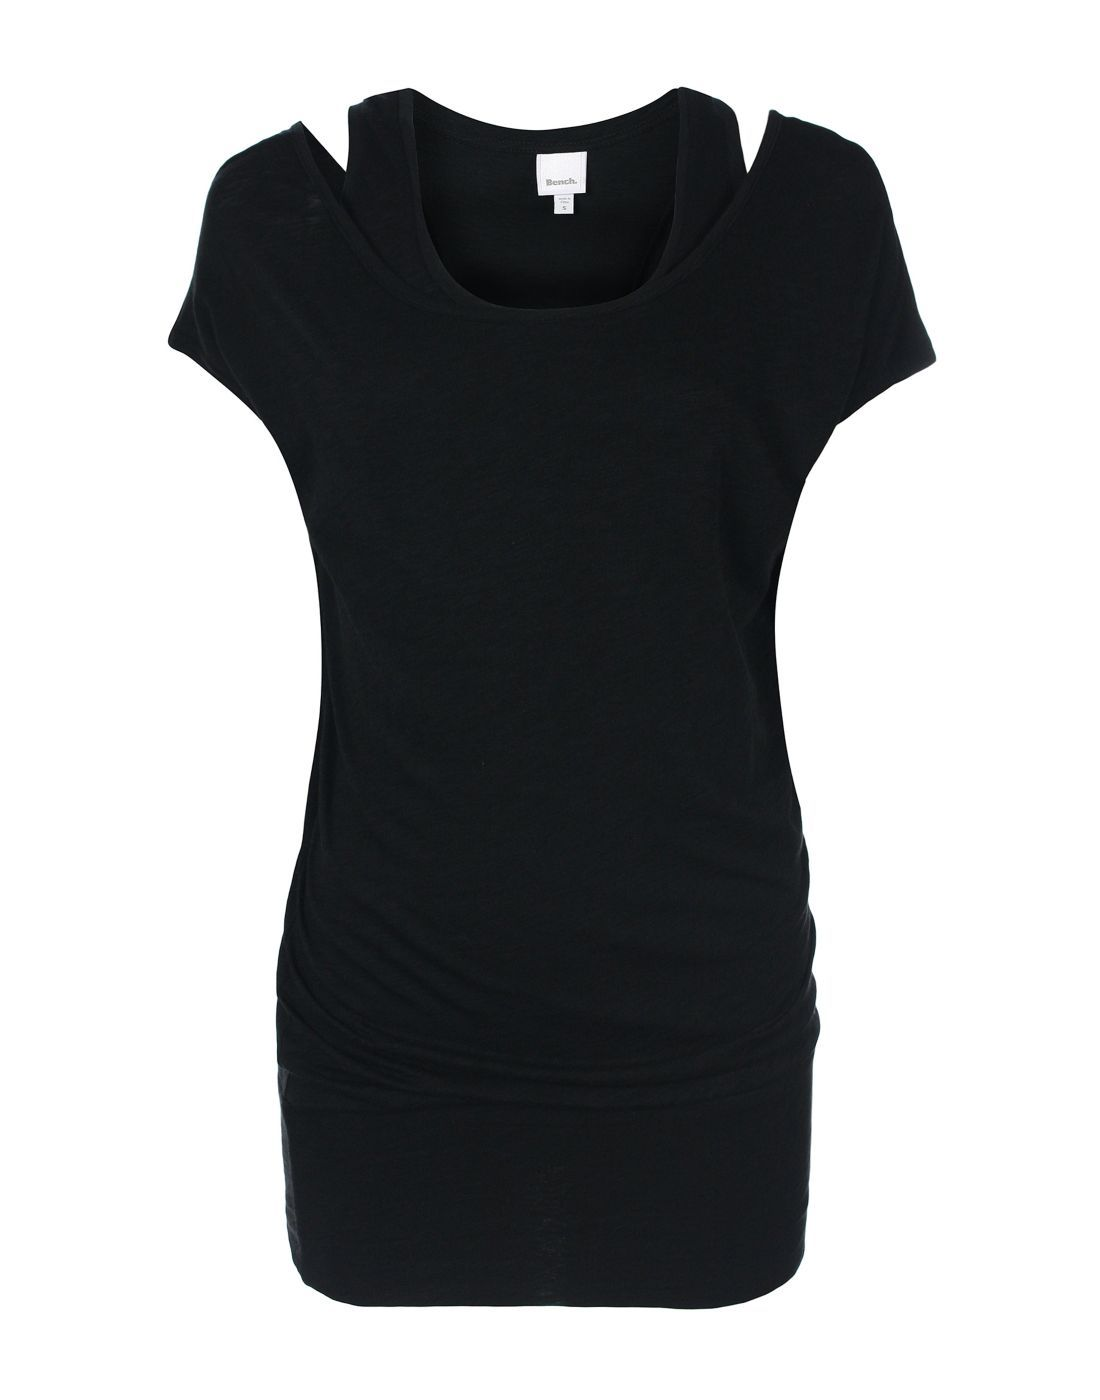 #StyleMyBench  THEN AGAIN TOP - Women